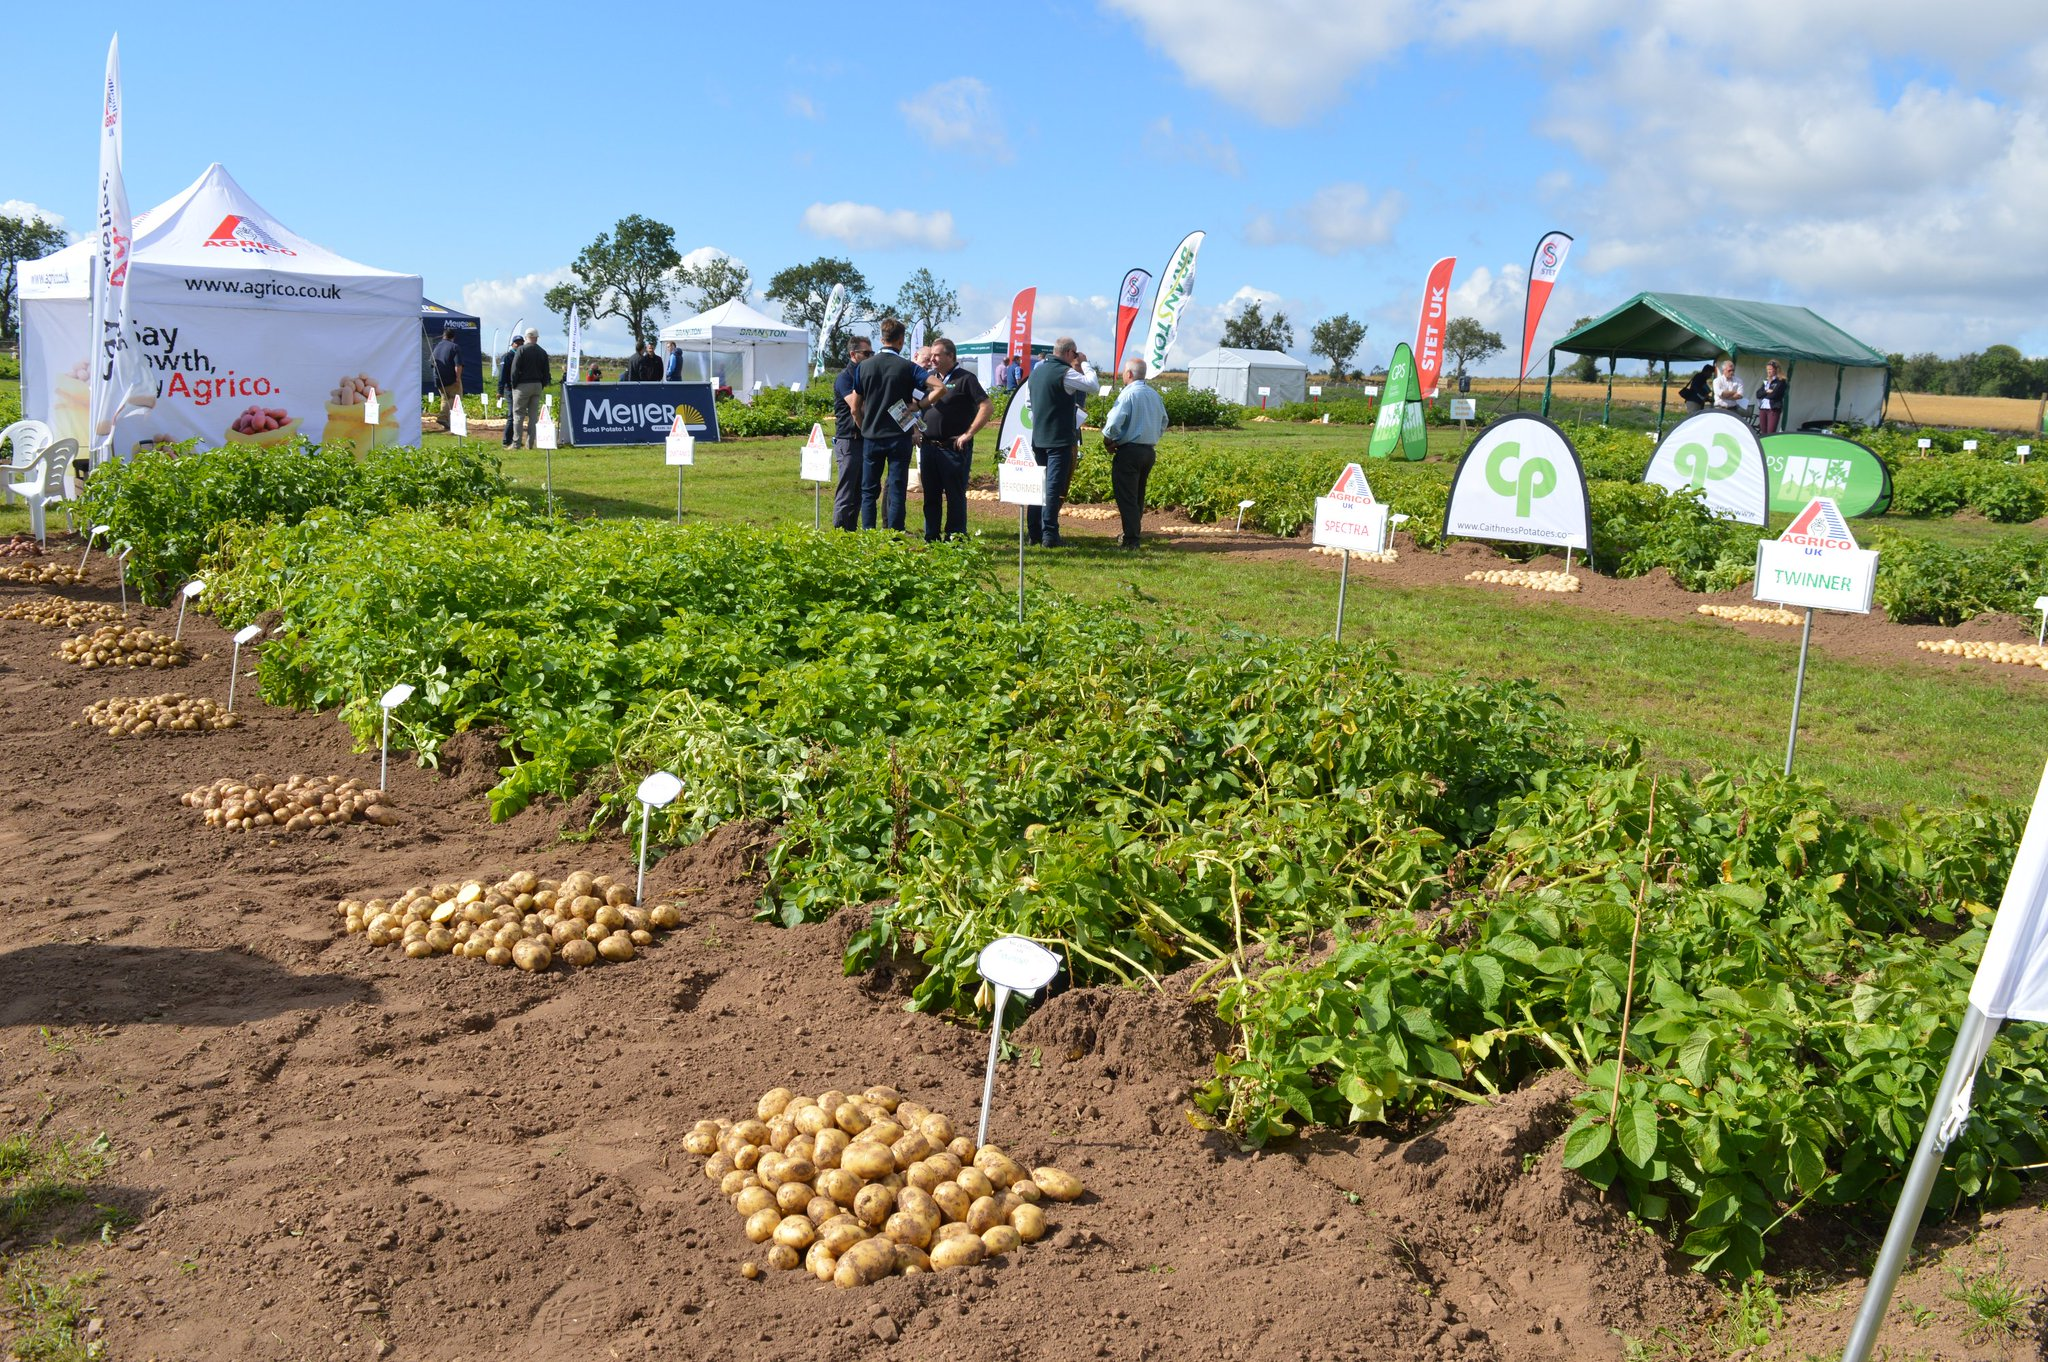 Demonstration plots at Potatoes in Practice